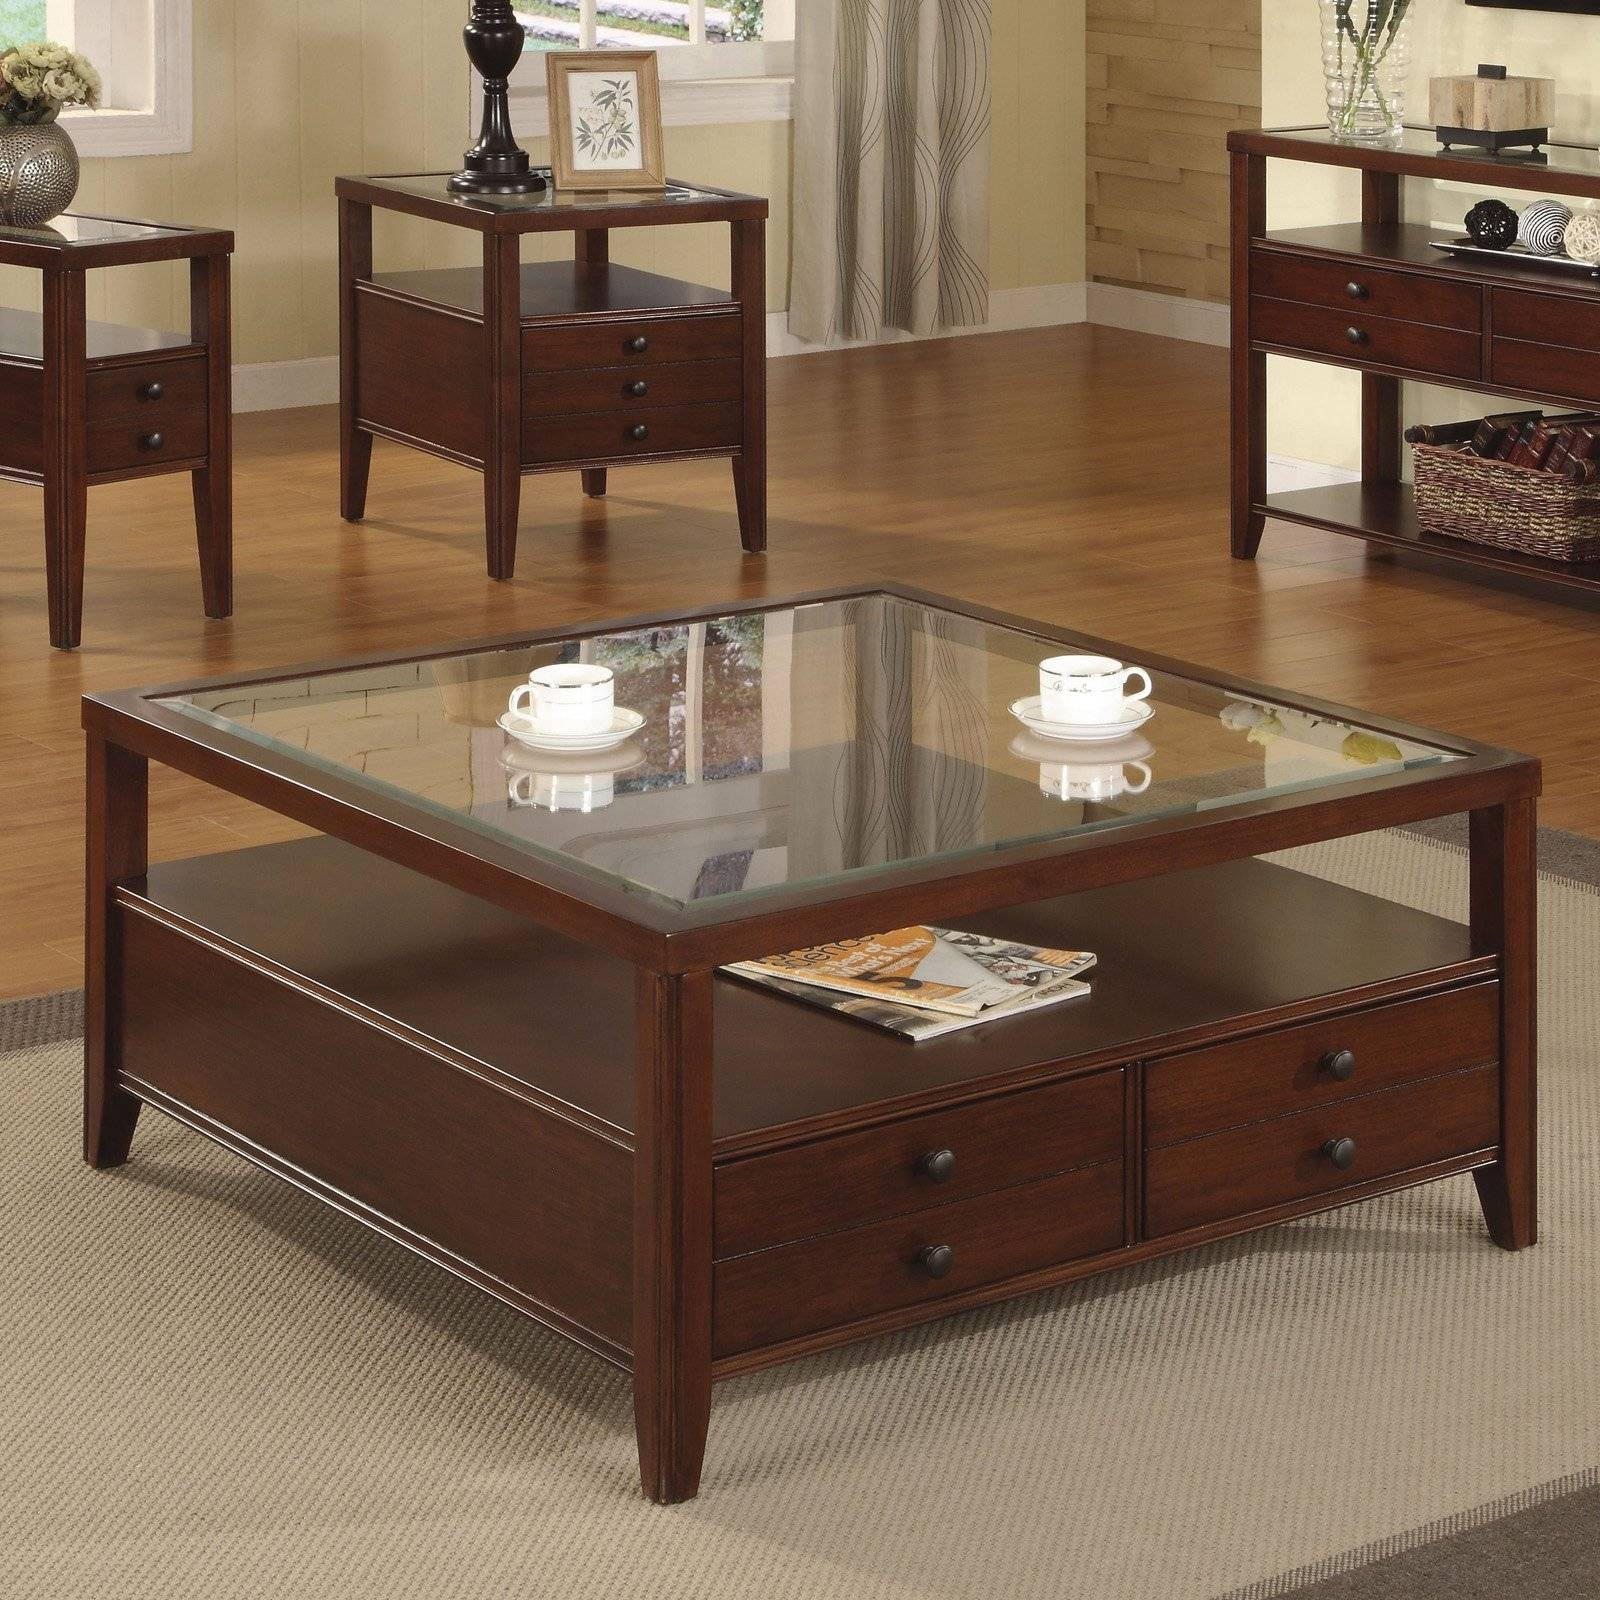 Large Square Coffee Table Wood Material Dark Legs Finish Brown Top within Large Square Wood Coffee Tables (Image 19 of 30)